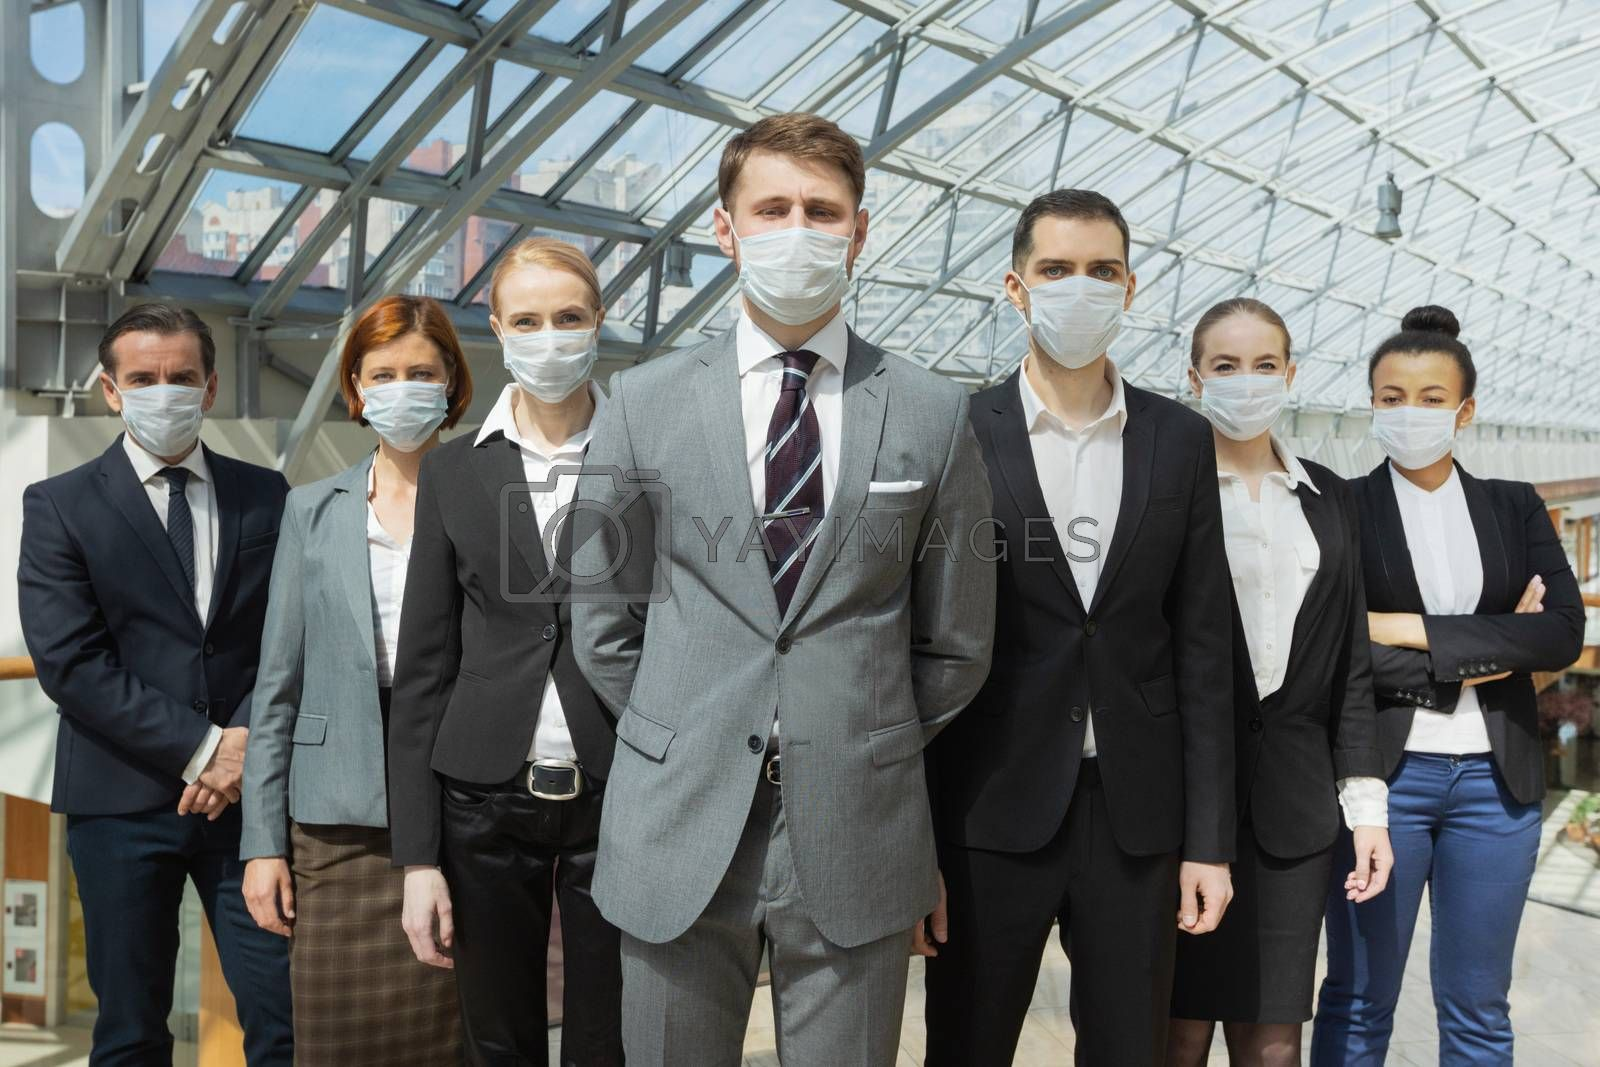 Business people wearing surgical protective masks and standing together, healthcare and covid-19 prevention concept